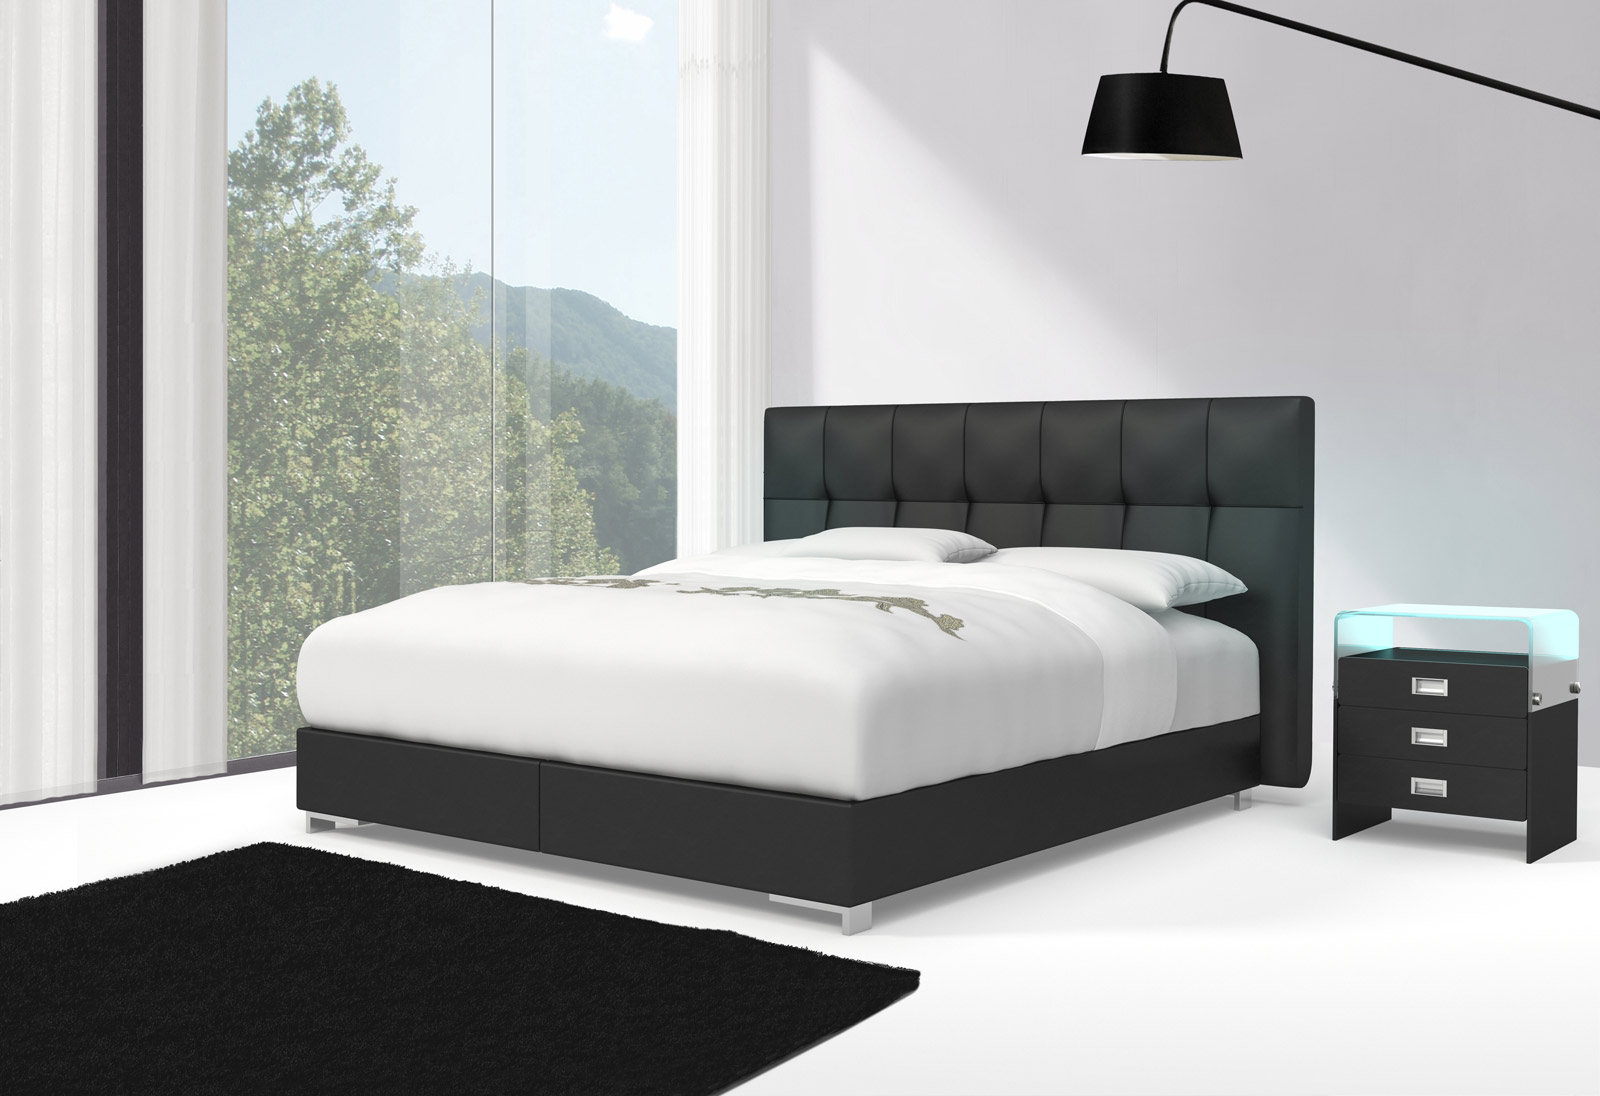 sam design boxspringbett 140 x 200 cm schwarz zarah toledo 27cm. Black Bedroom Furniture Sets. Home Design Ideas